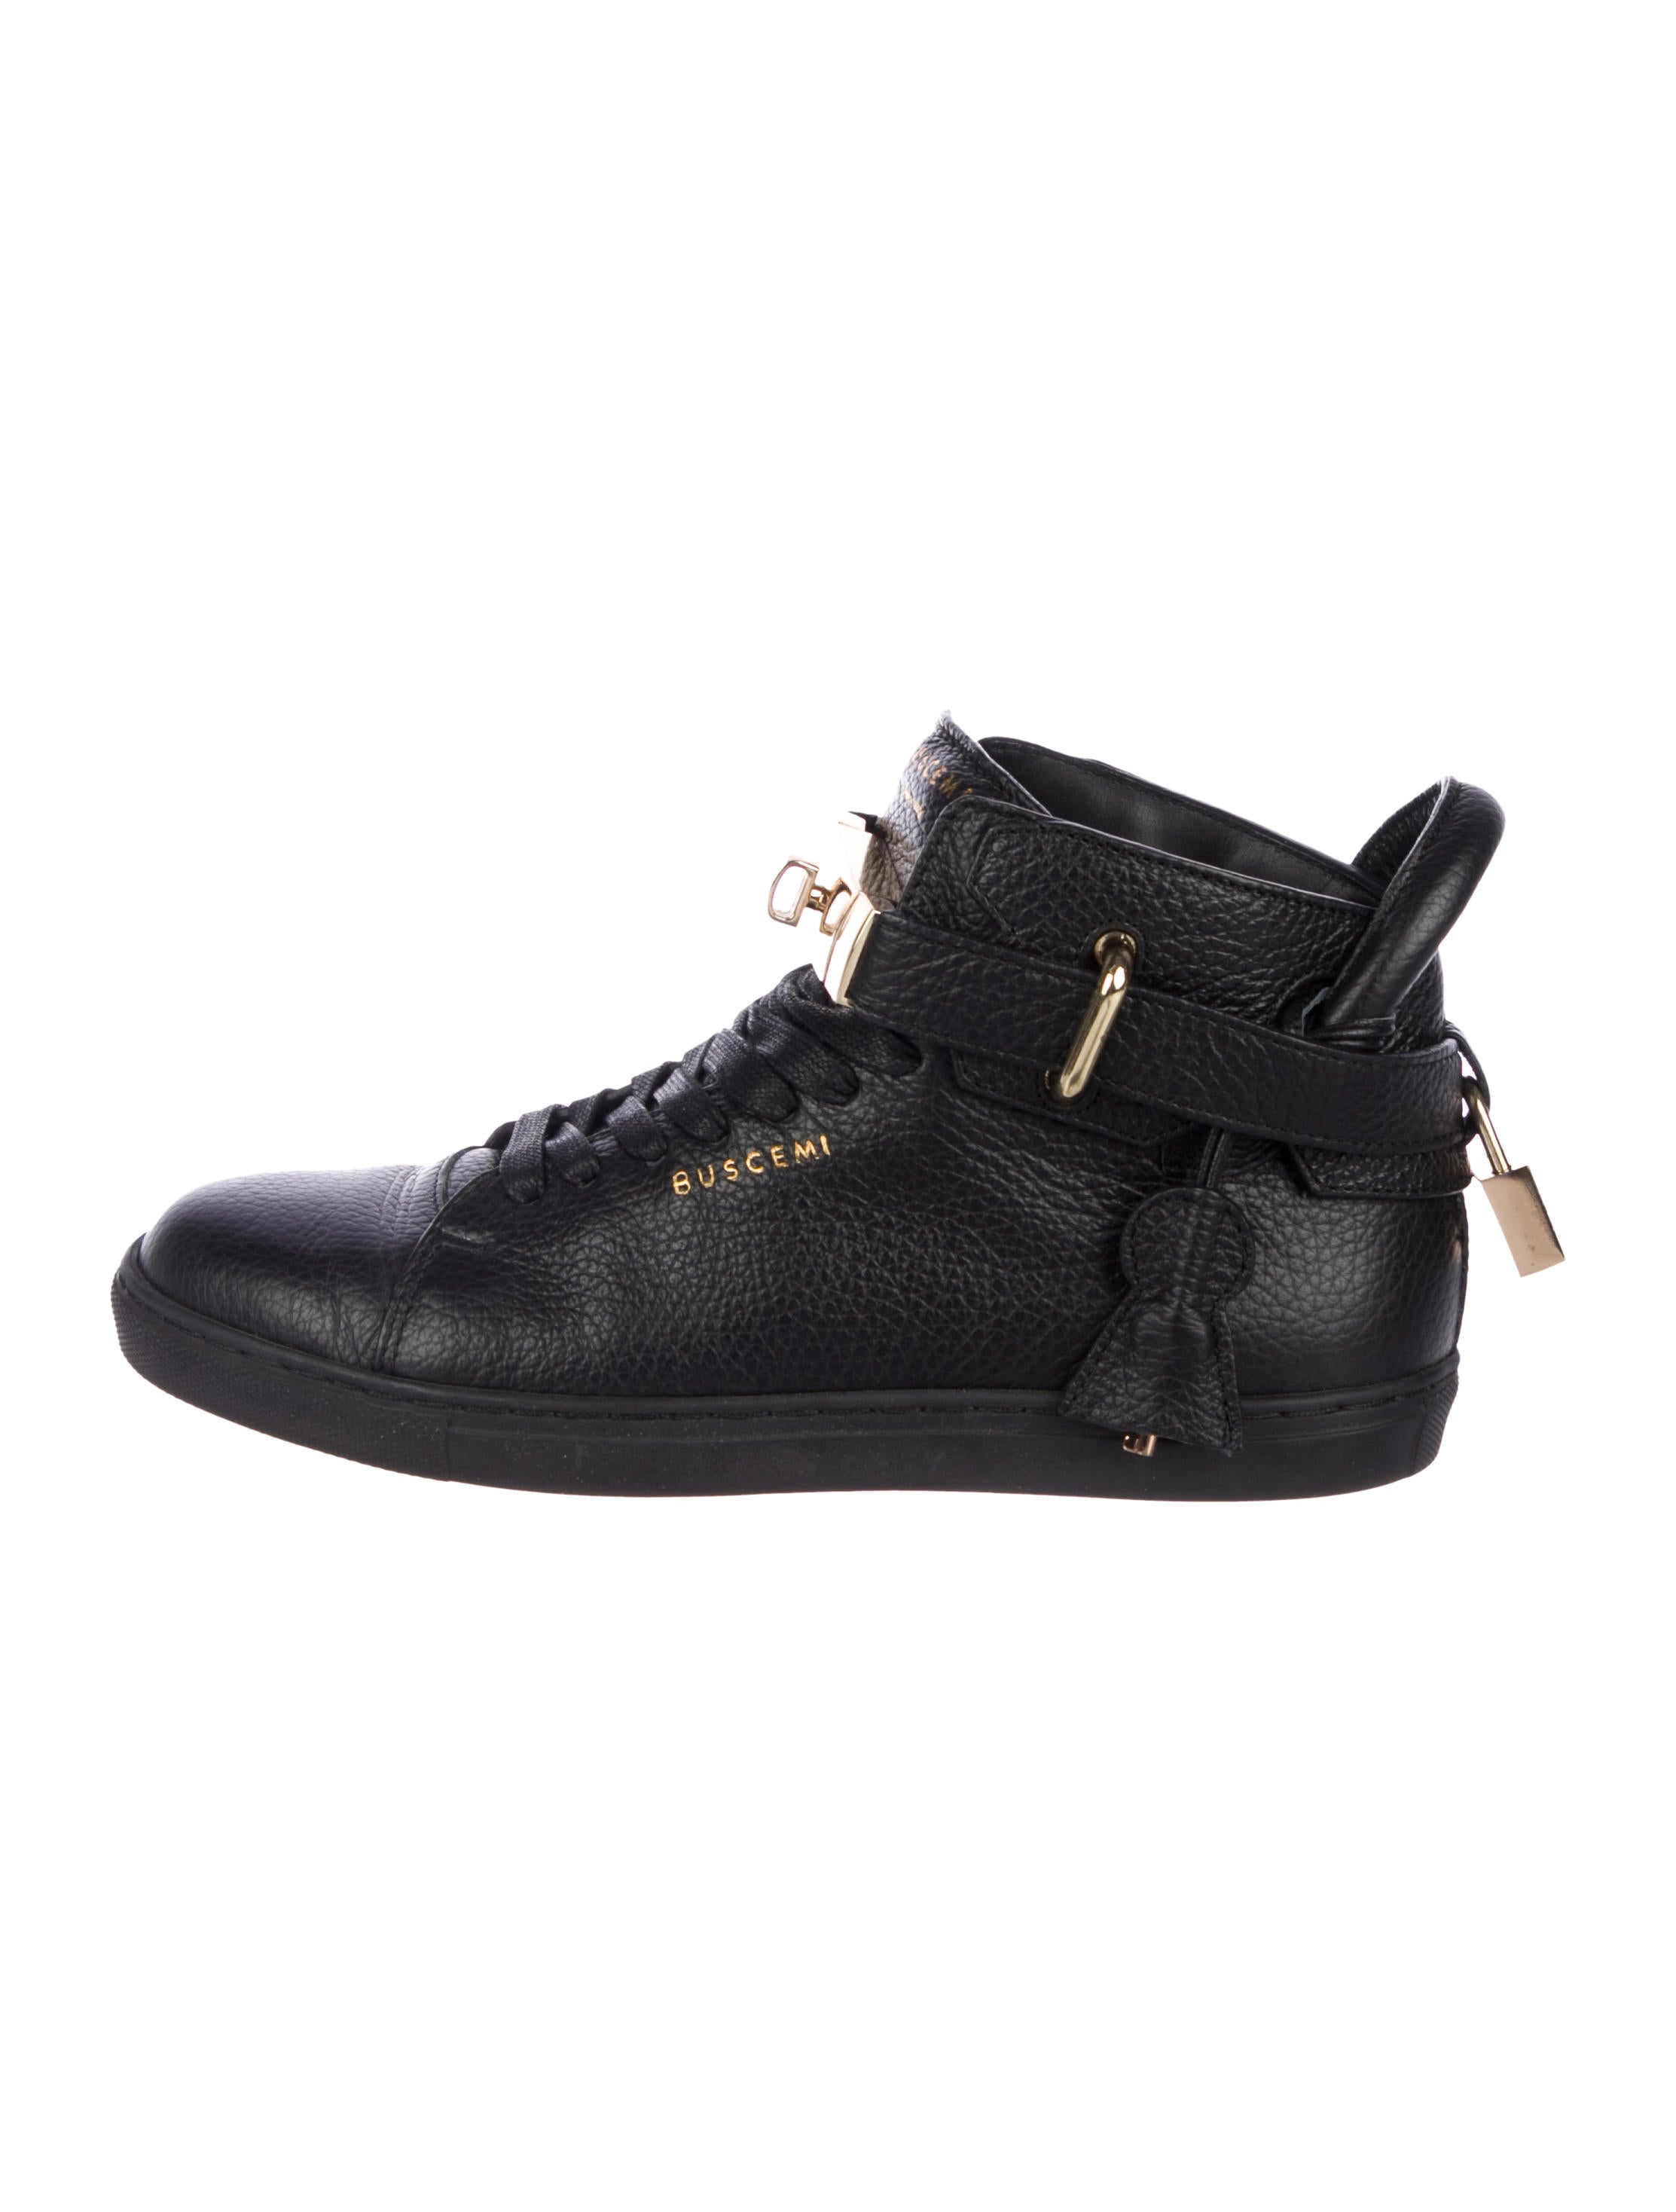 24fc1c590cb1 Buscemi 100mm High-Top Sneakers - Shoes - BSI20789